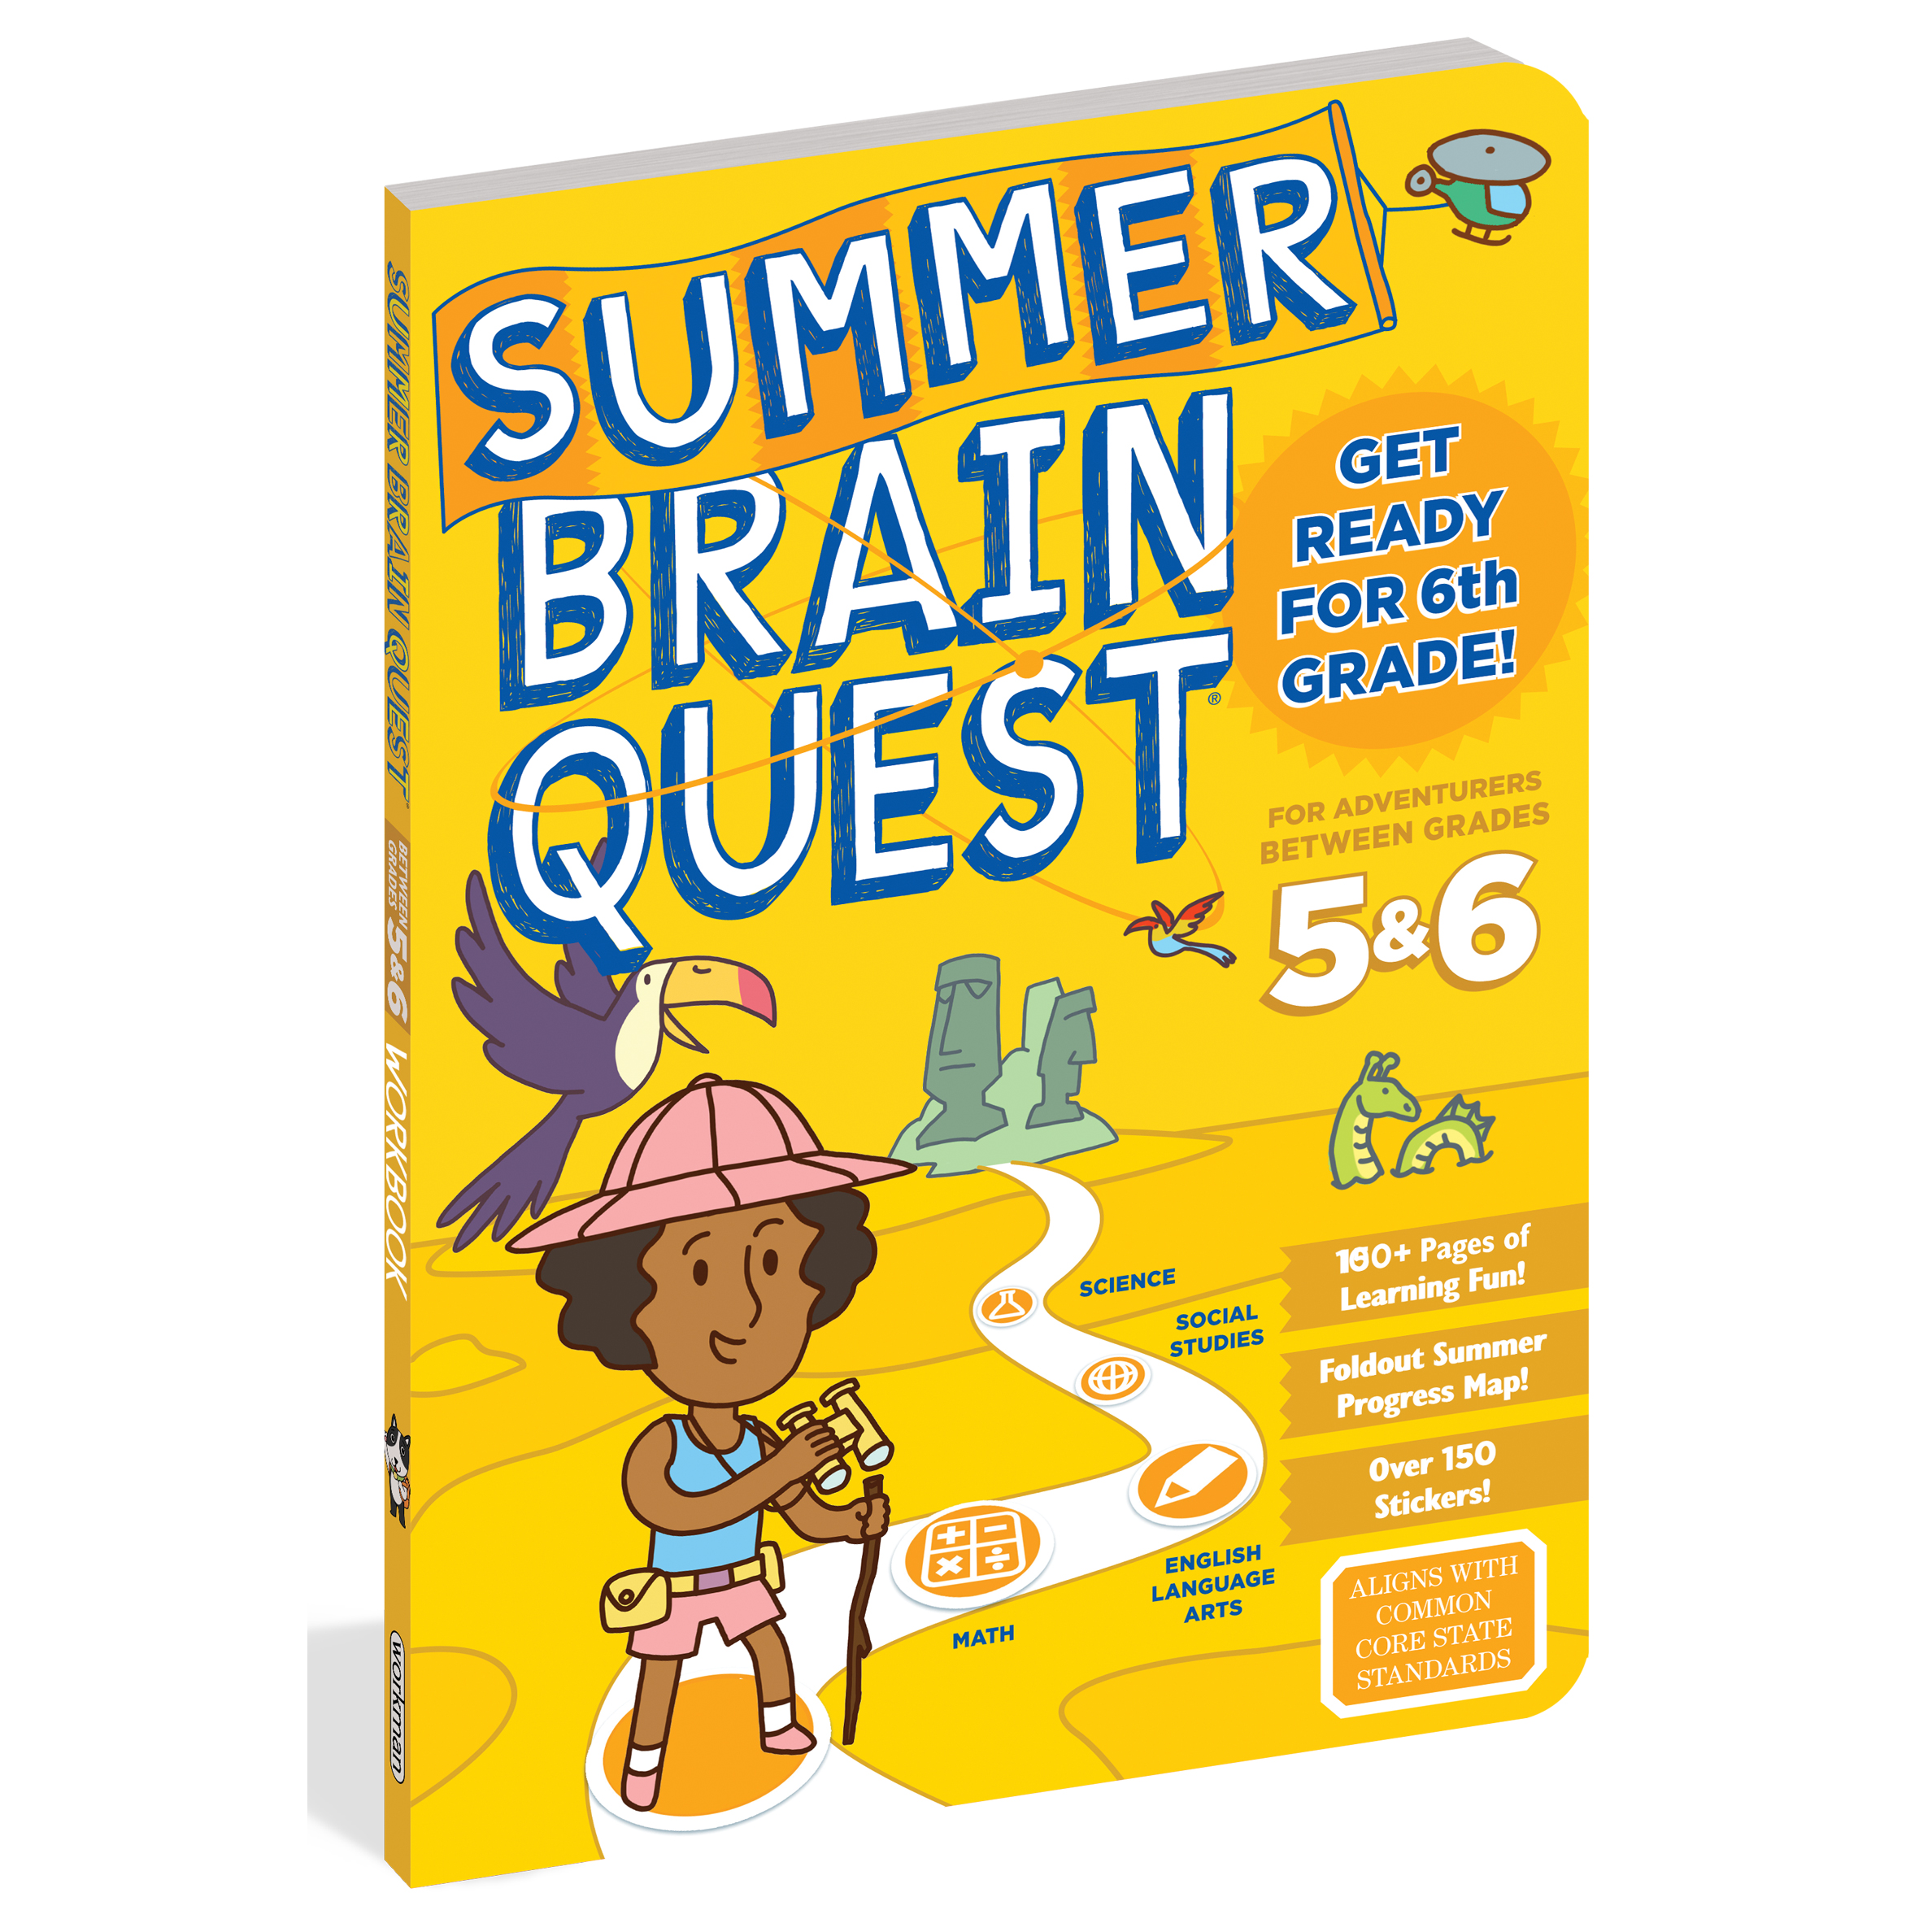 Summer Brain Quest Get ready for 6th grade! 1